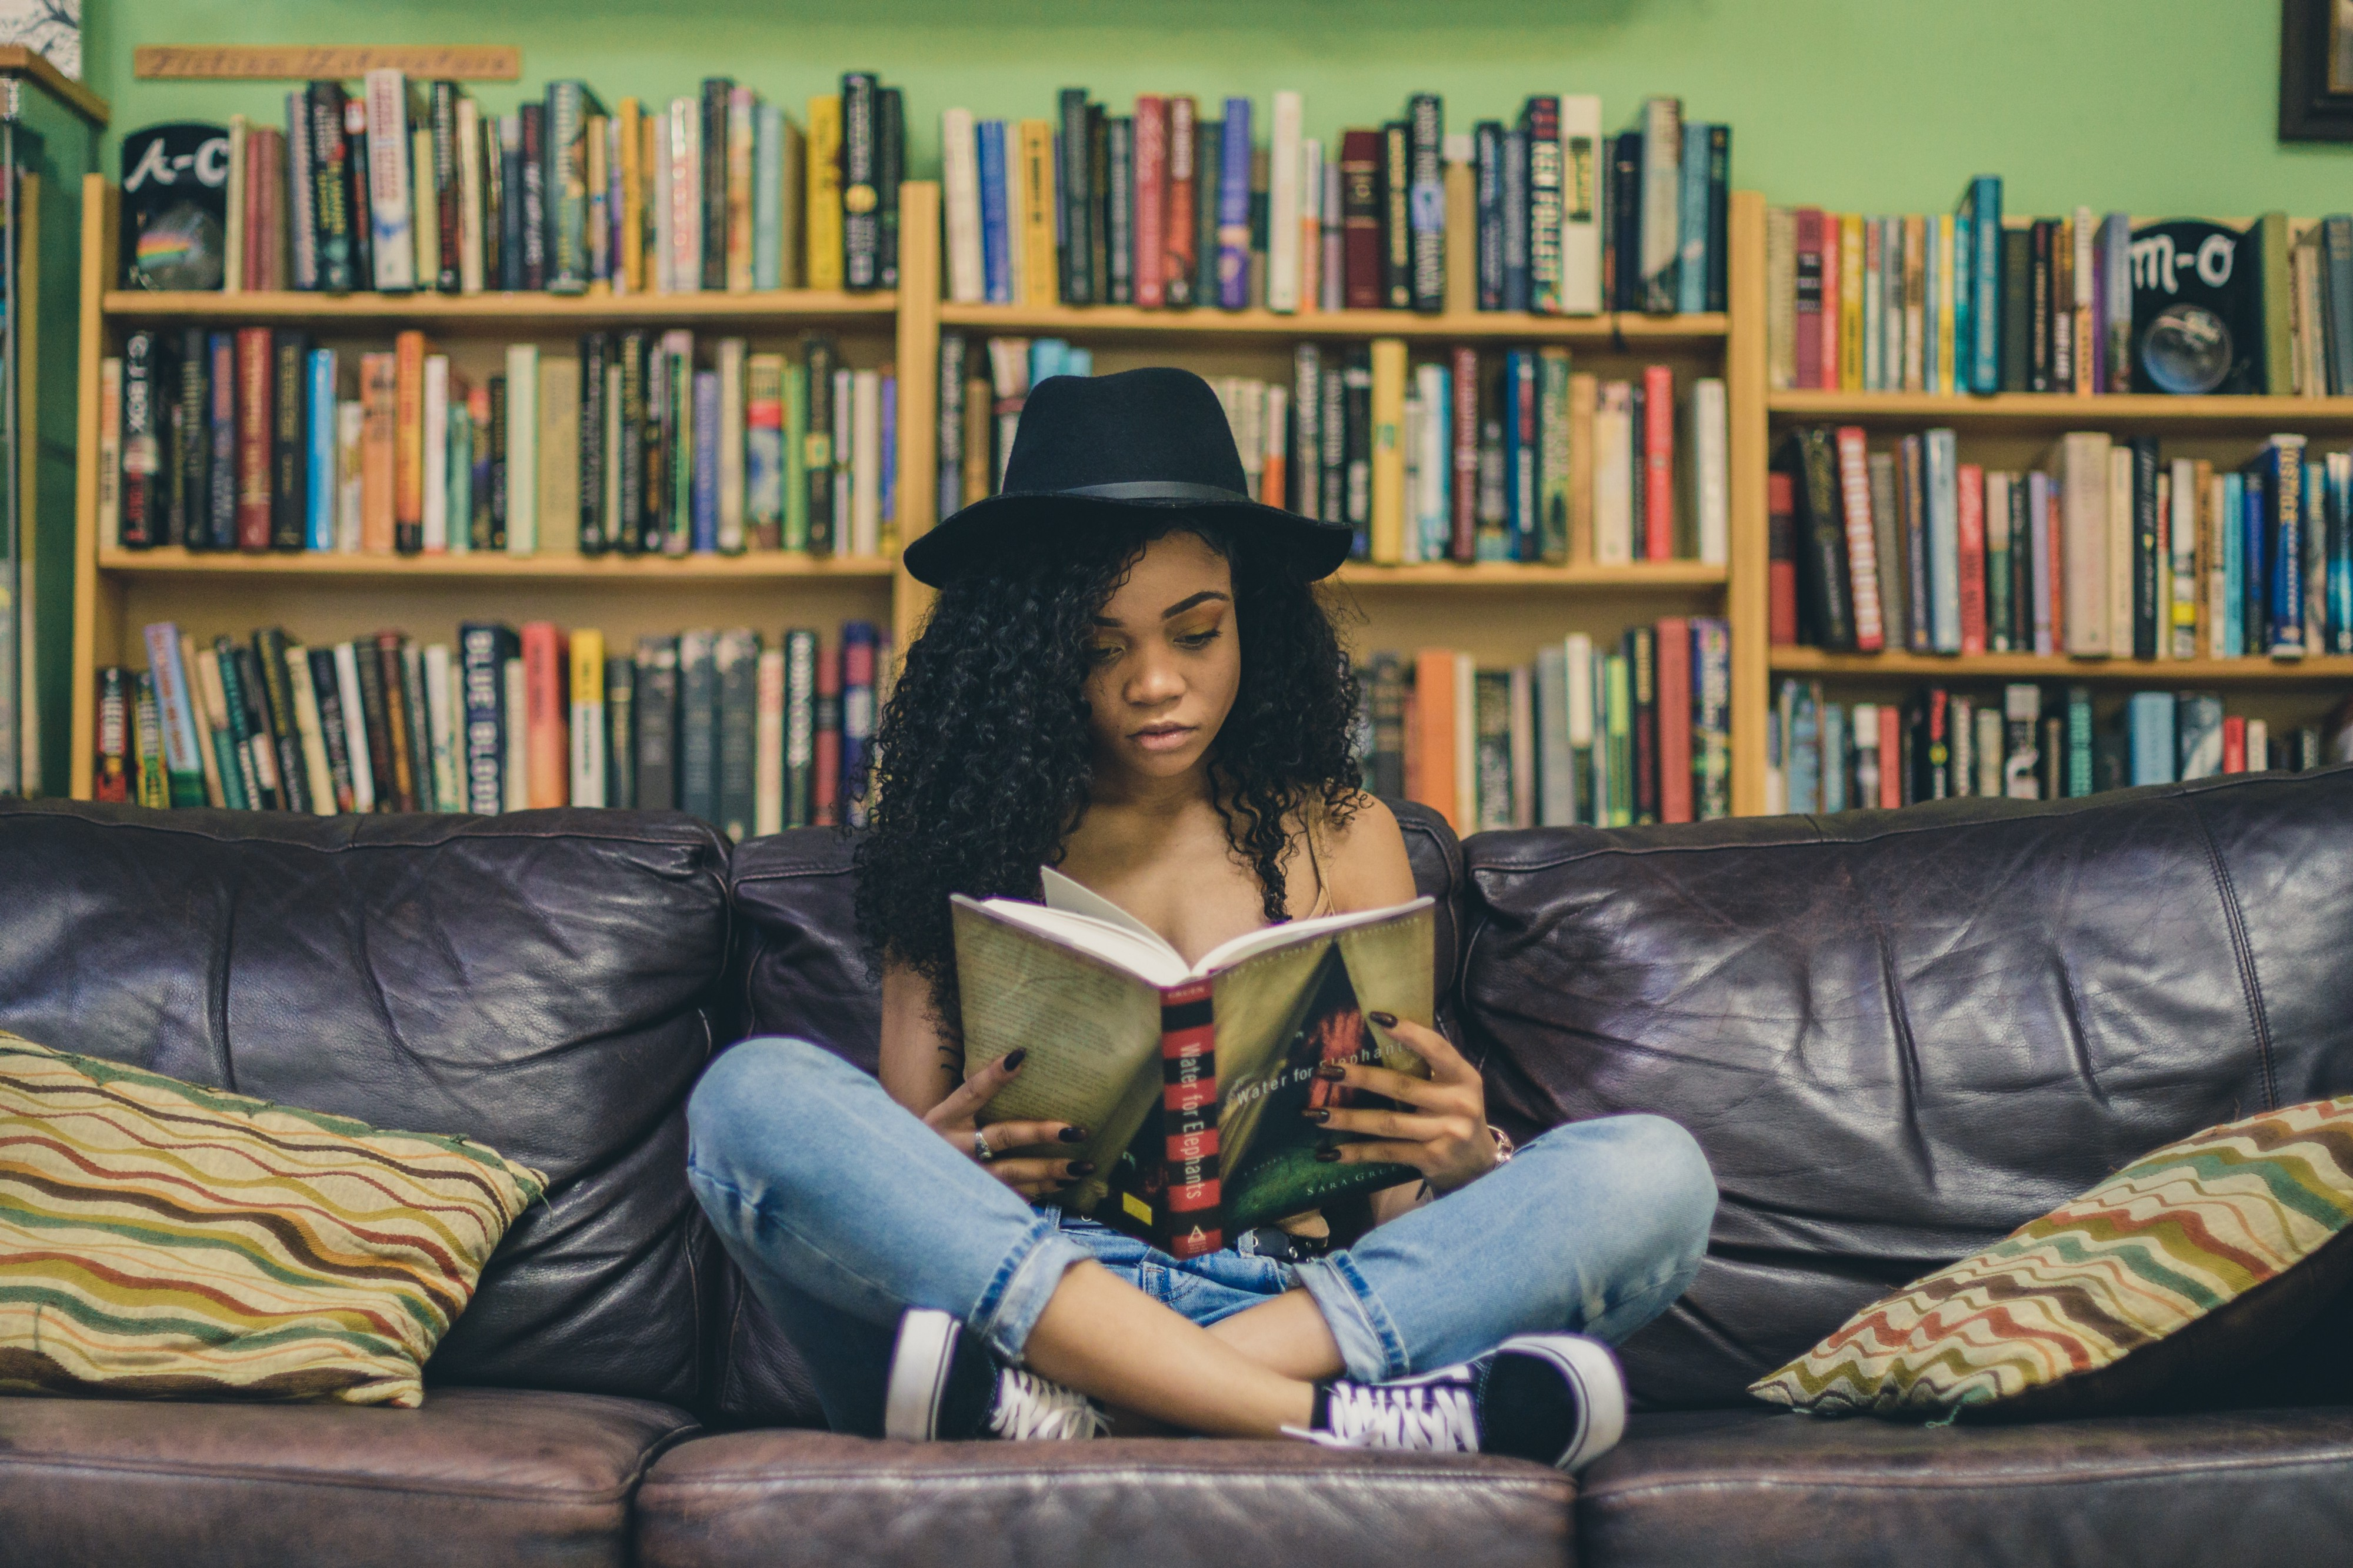 Photo of a young black woman reading on a leather couch with full bookshelves behind her by iam Se7en.